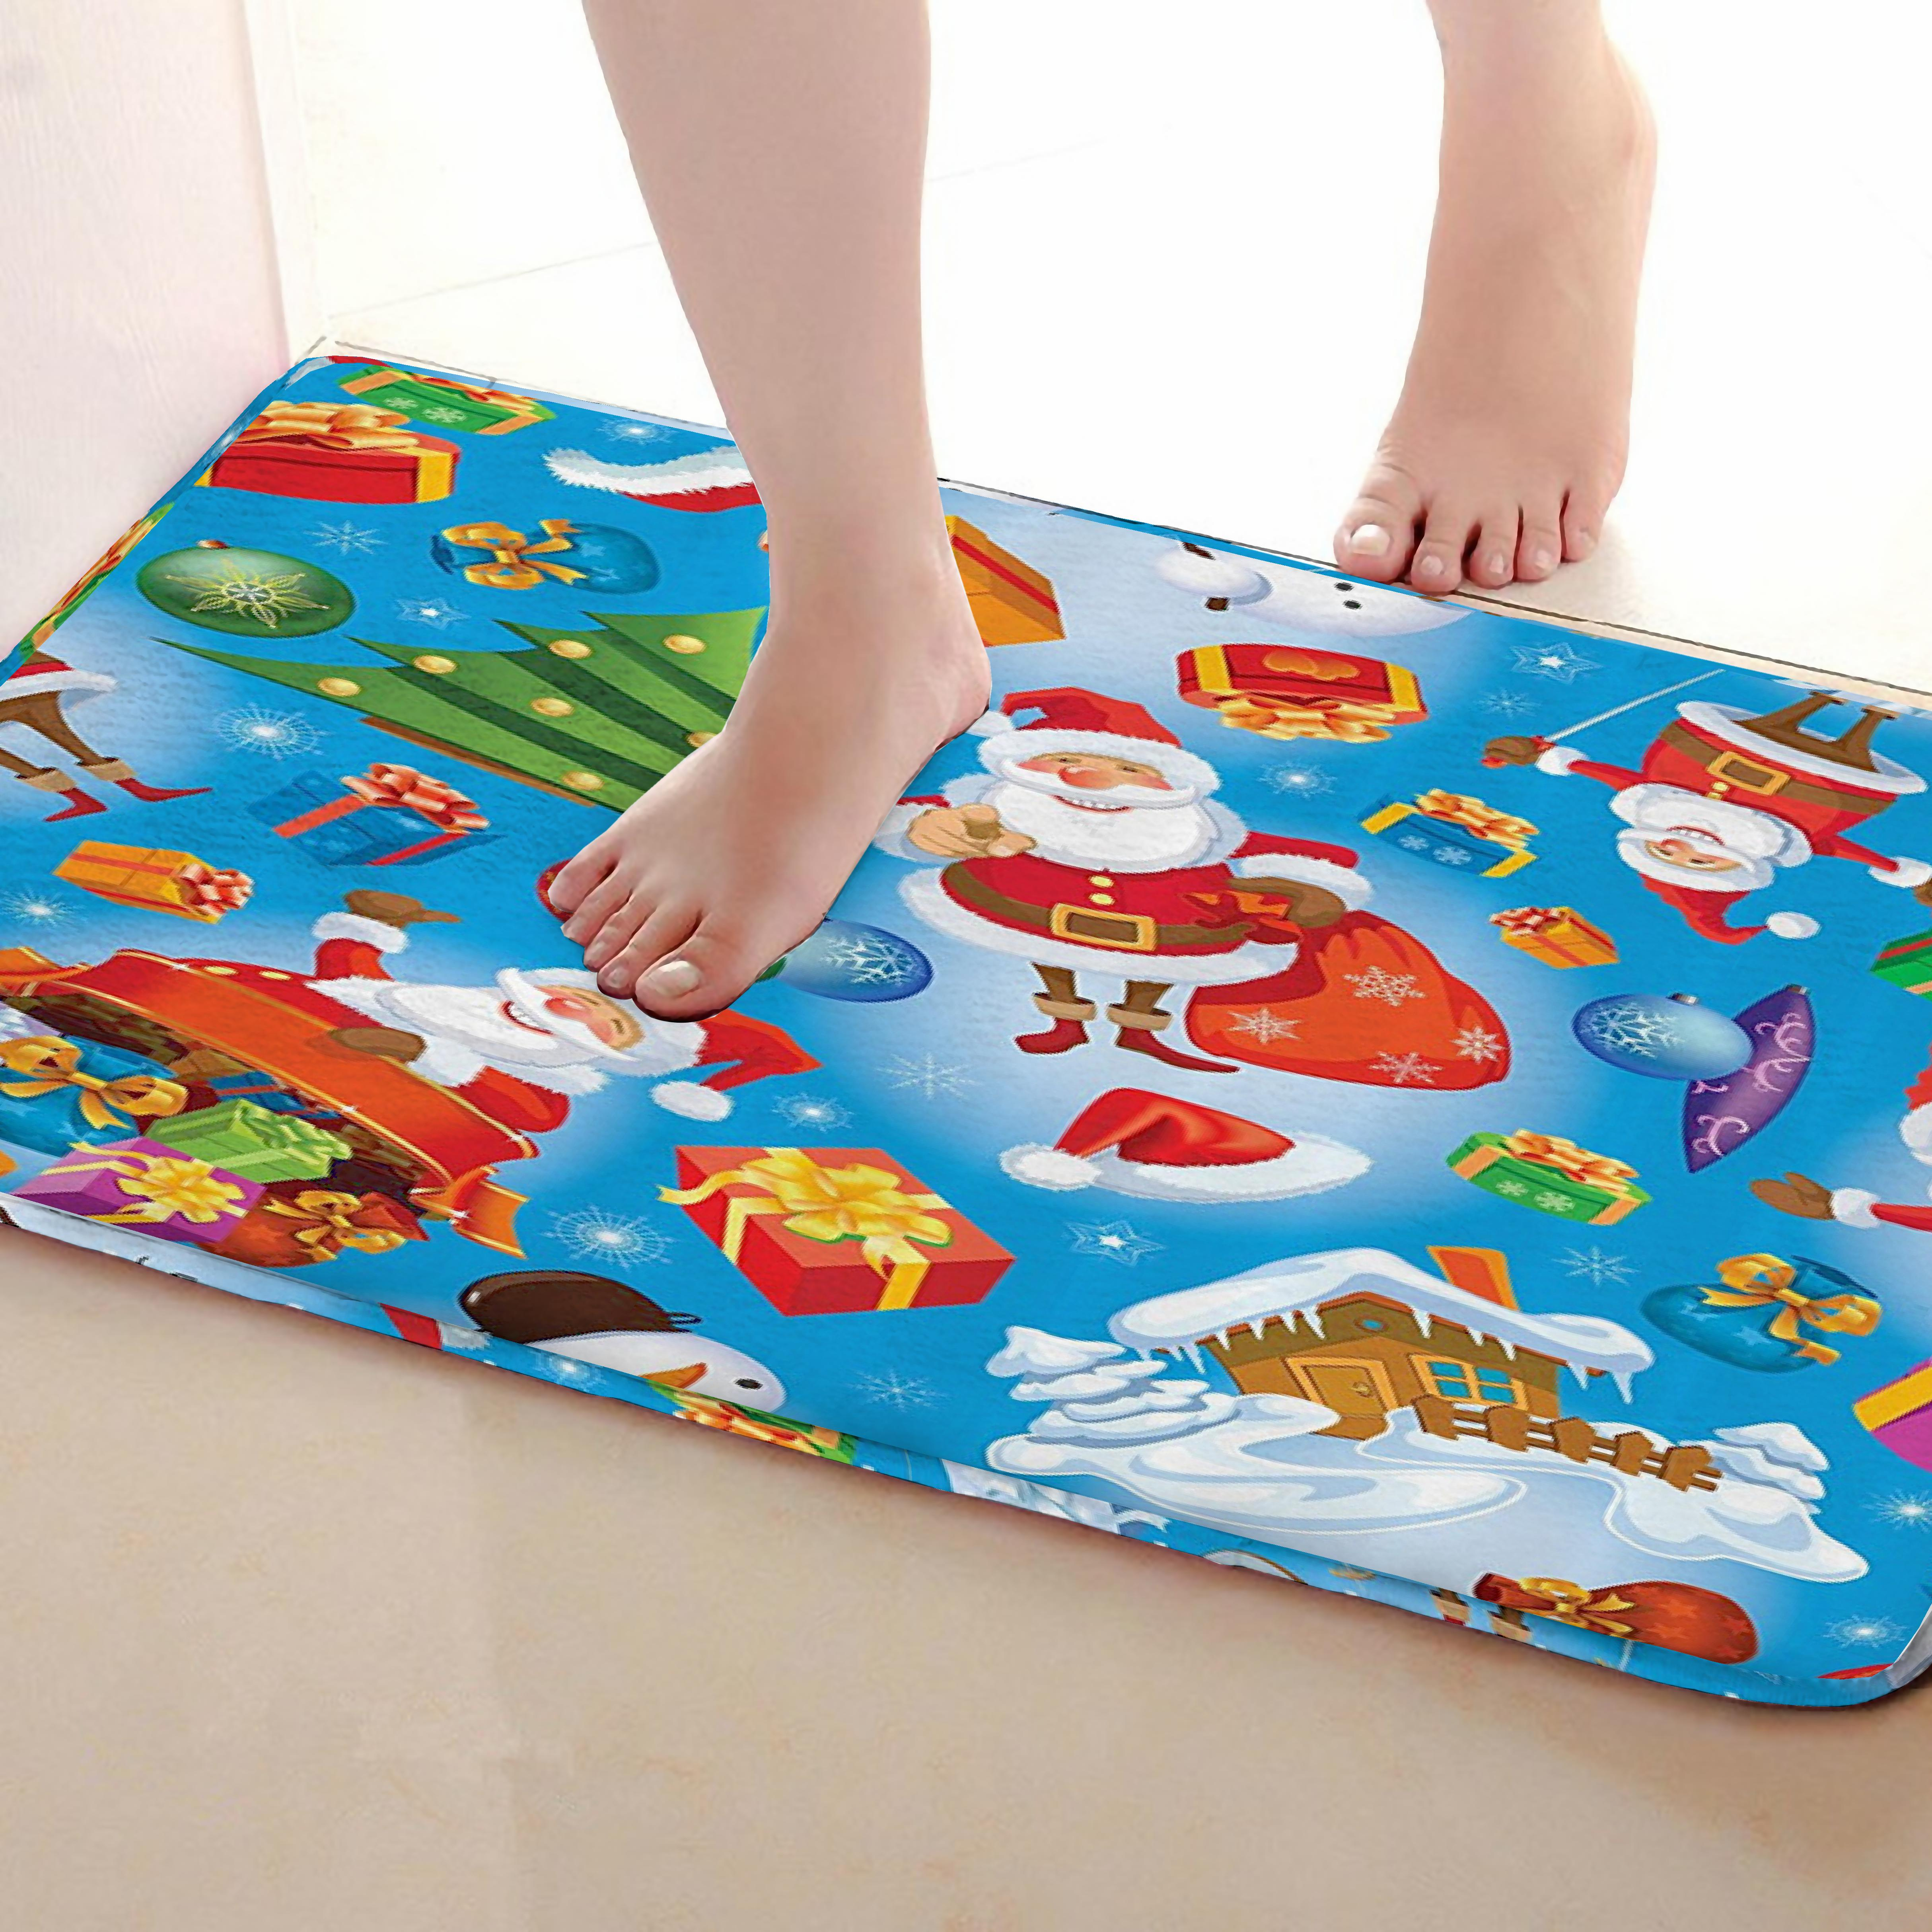 Santa Claus Style Bathroom Mat,Funny Anti skid Bath Mat,Shower Curtains Accessories,Matching Your Shower Curtain